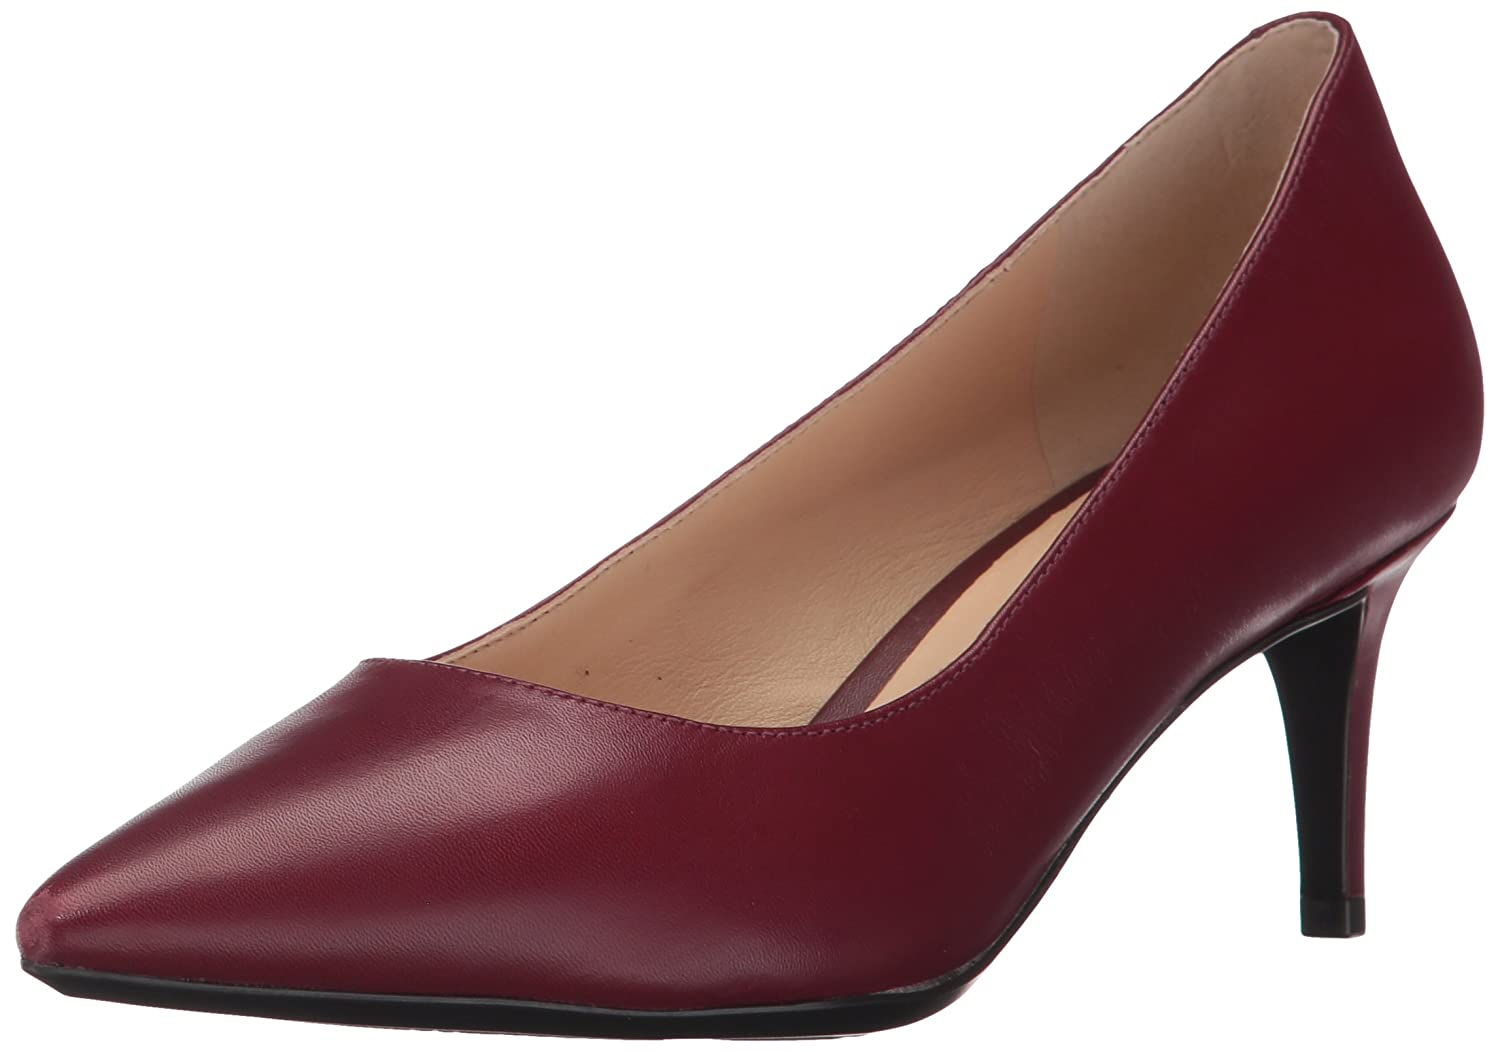 Nine West Women's SOHO9X9 Leather Pump B01NBHRD9L 8 B(M) US|Wine